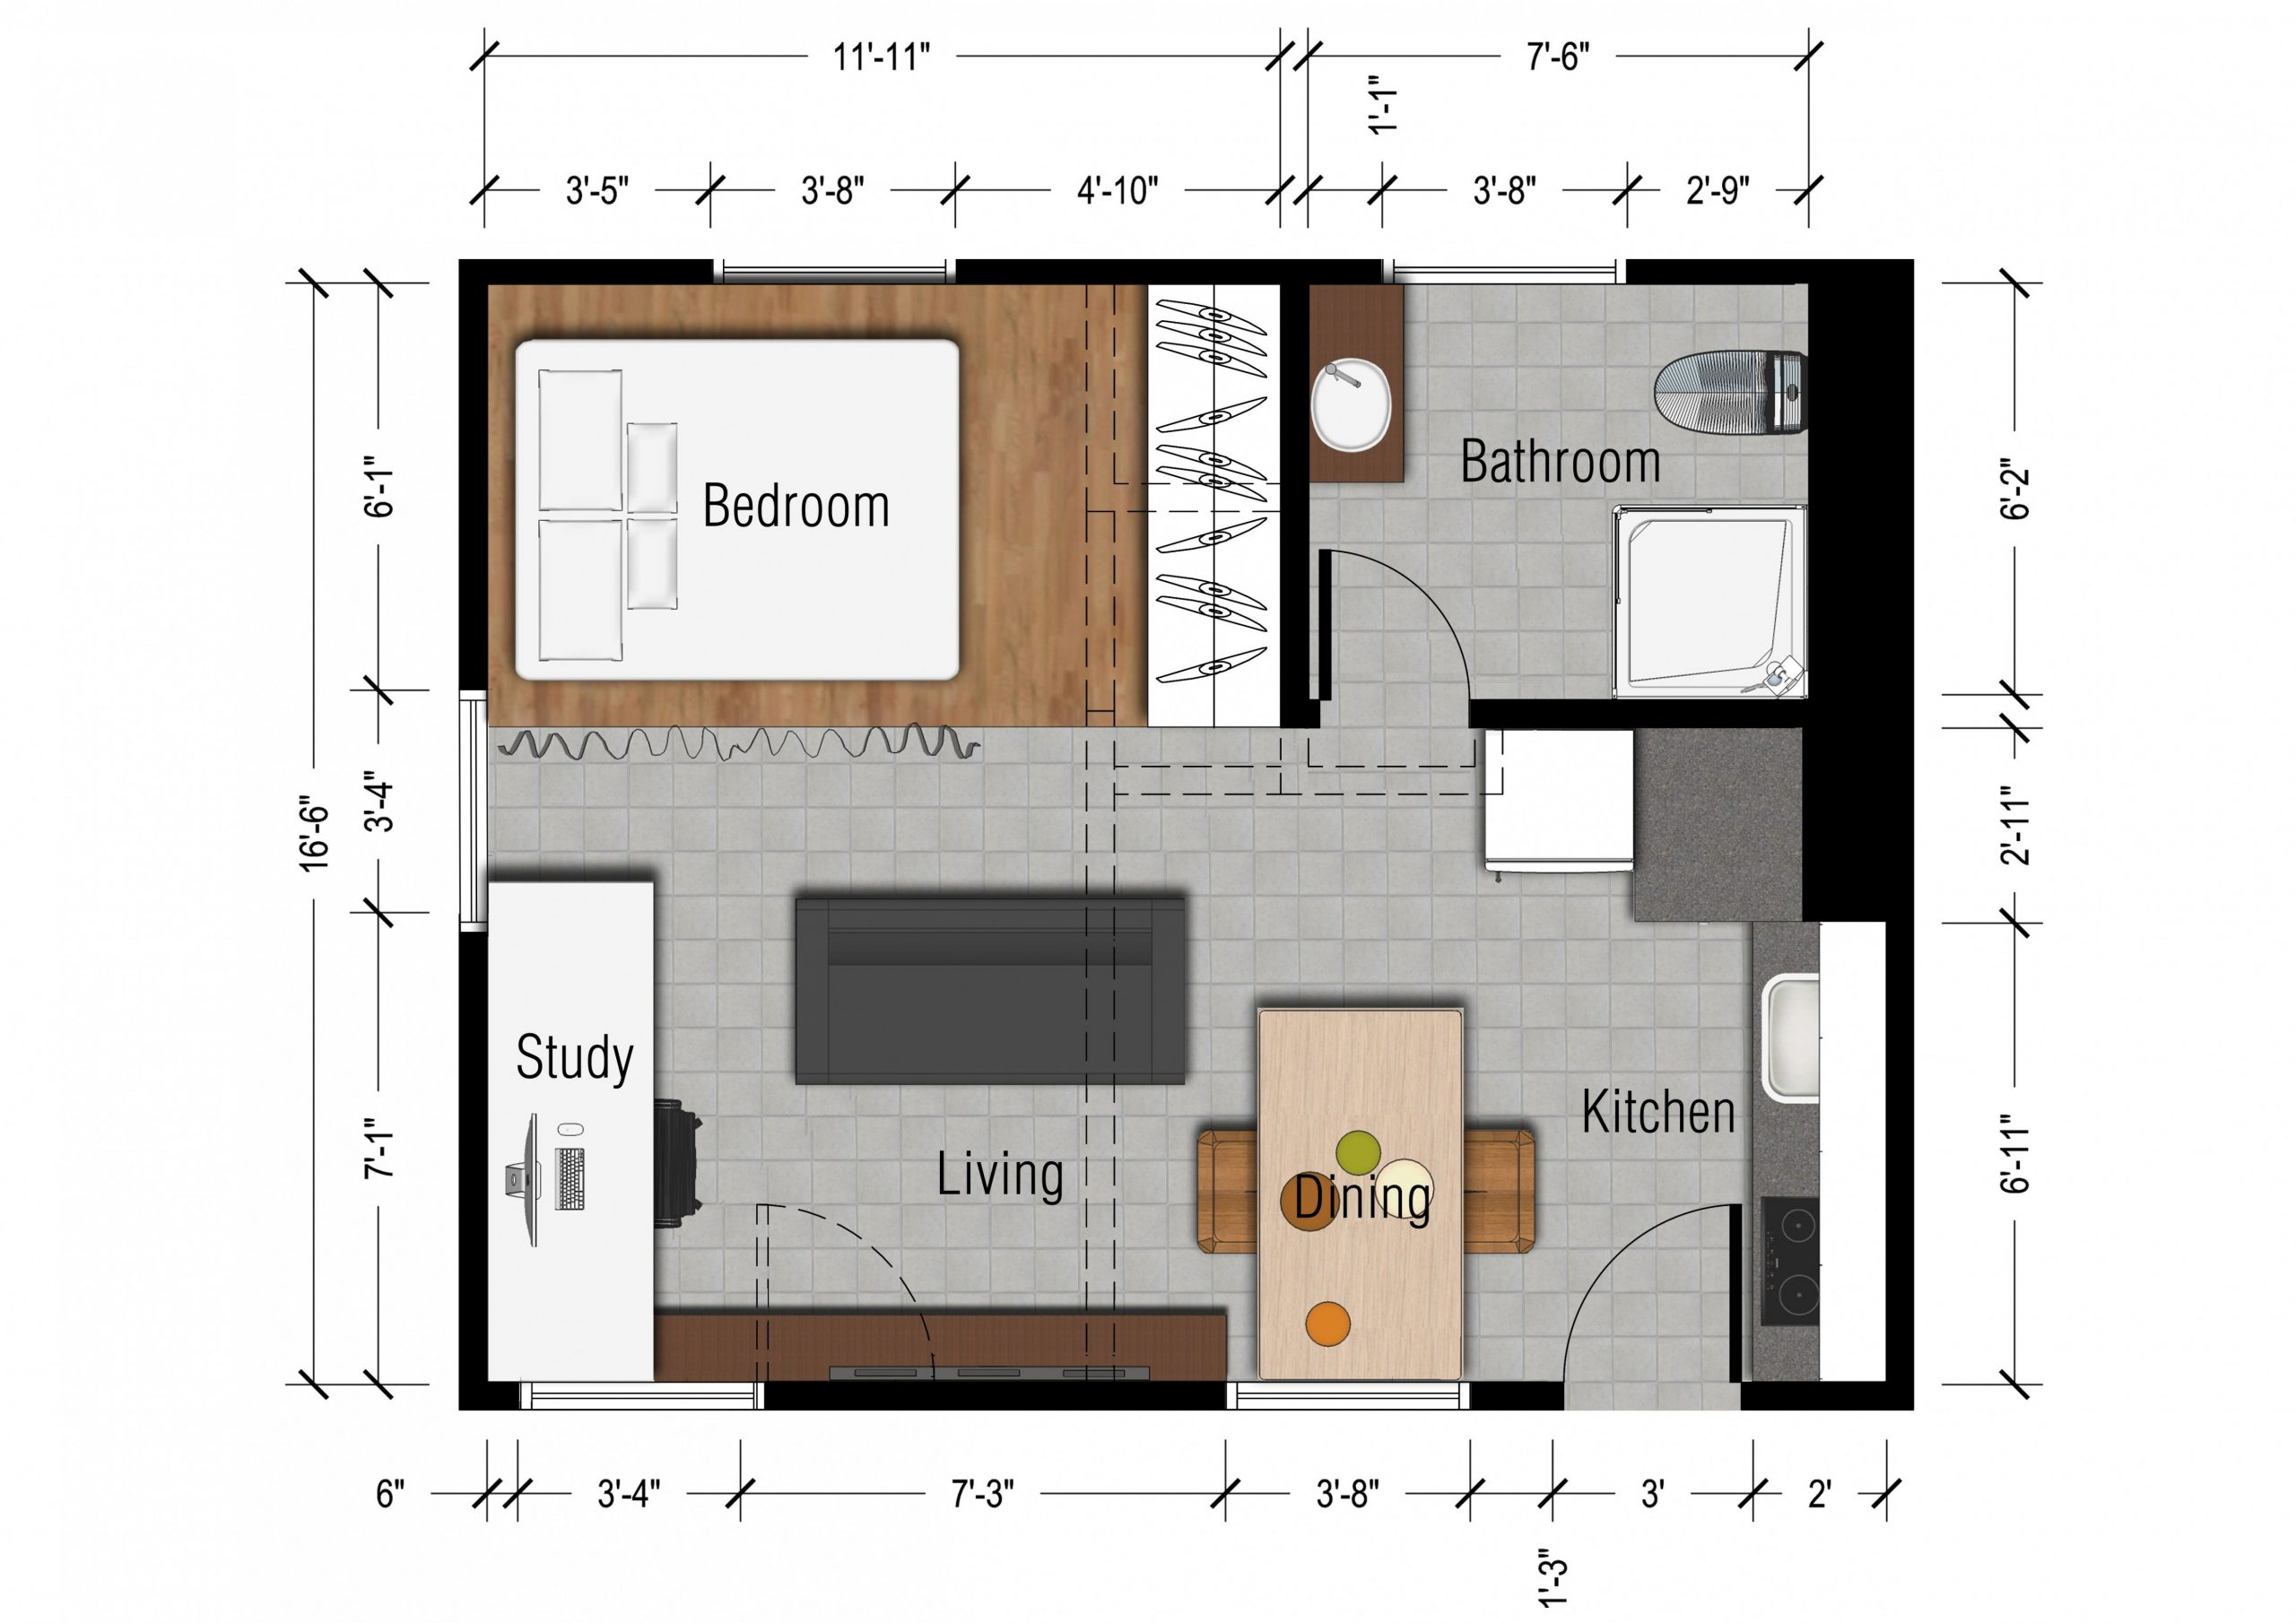 Exclusive Image of Small Apartment Plans Layout - decorpass